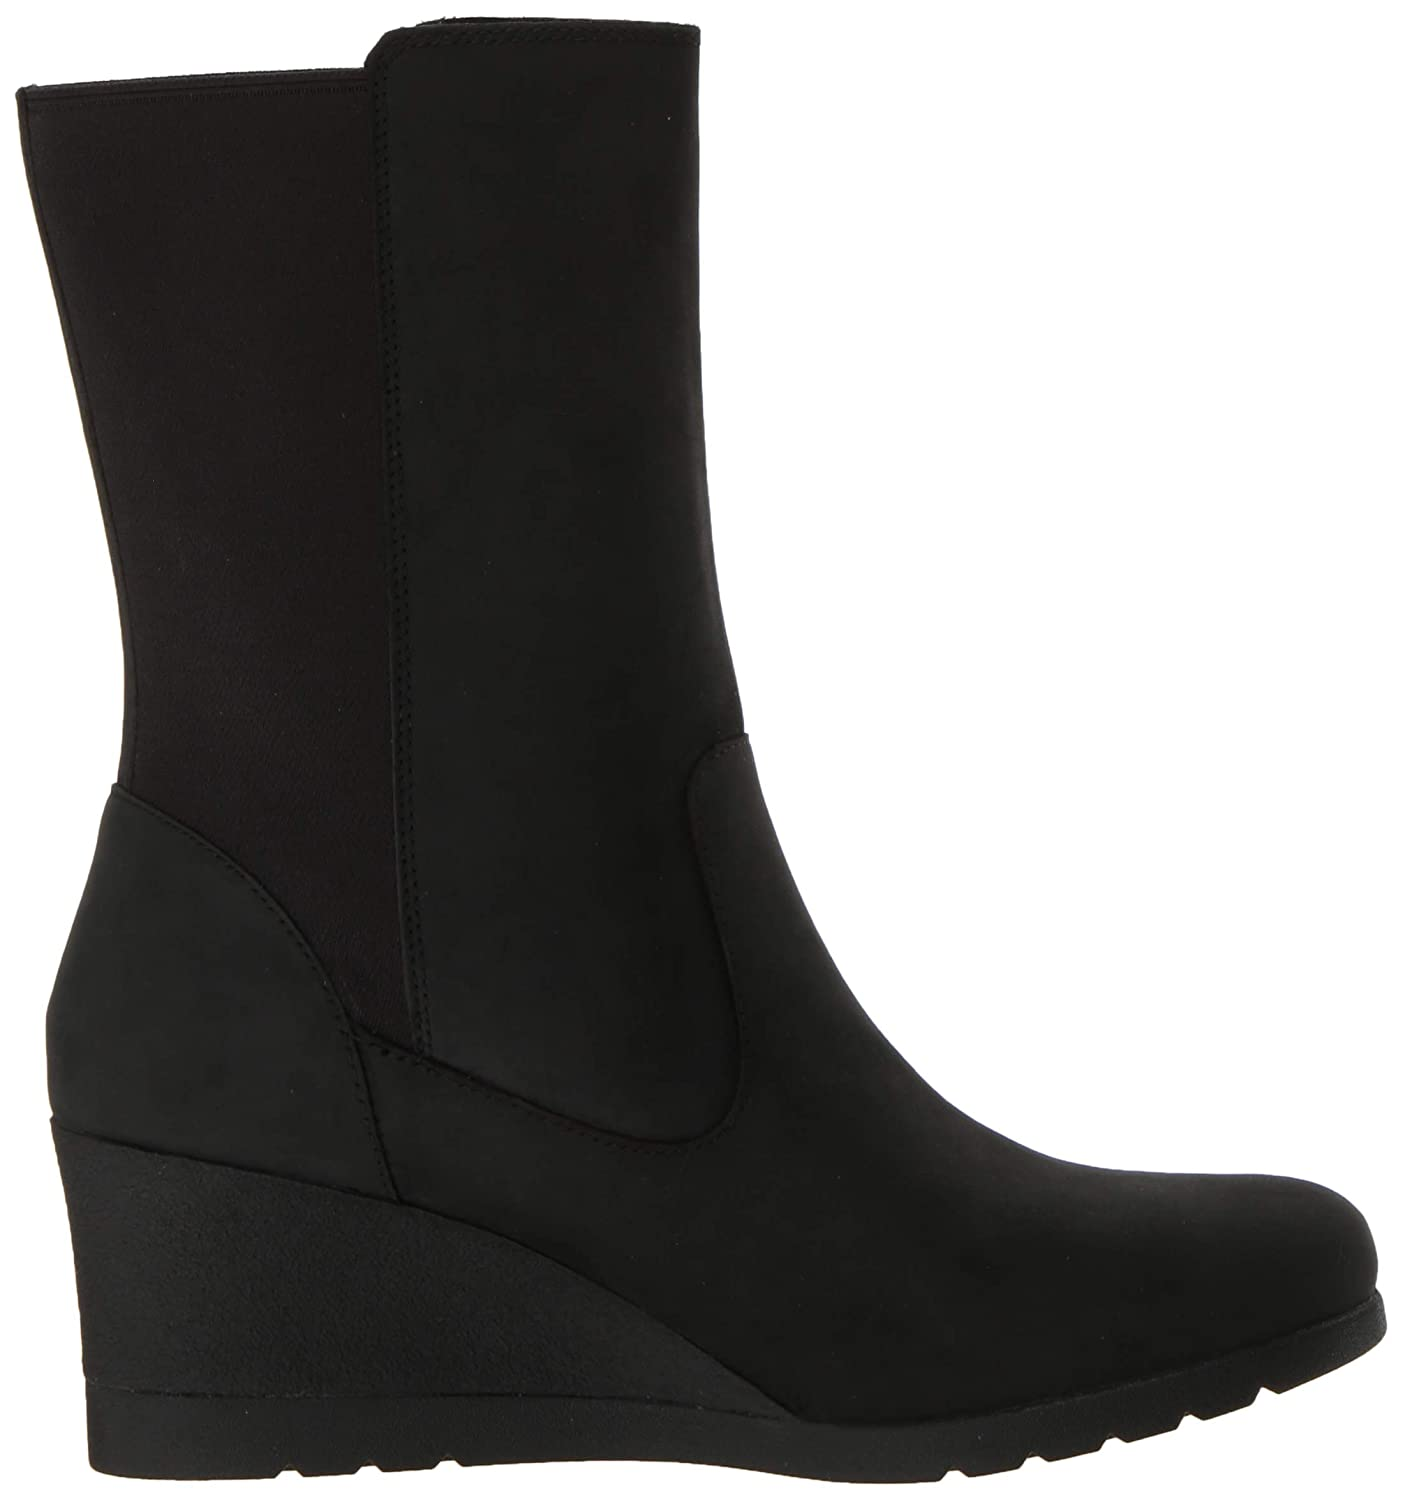 1d27cde0c82 UGG Women's W Coraline Fashion Boot